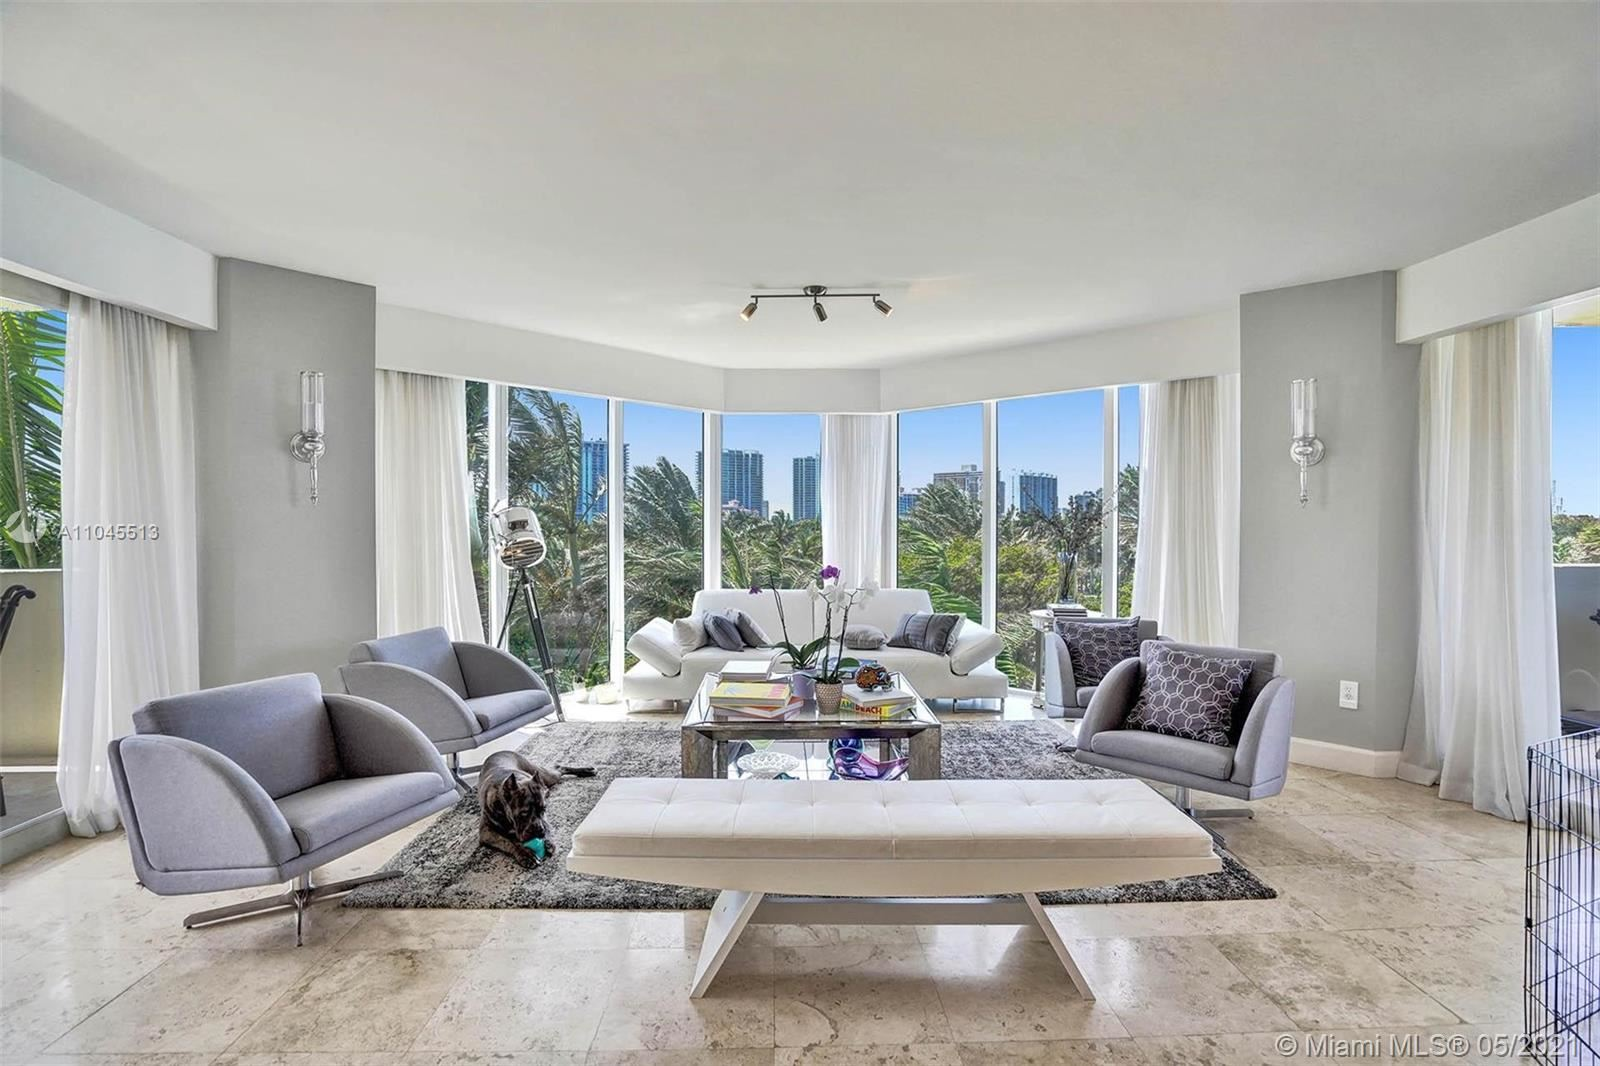 19333 Collins Ave #504, Sunny Isles, FL 33160 - #: A11045513